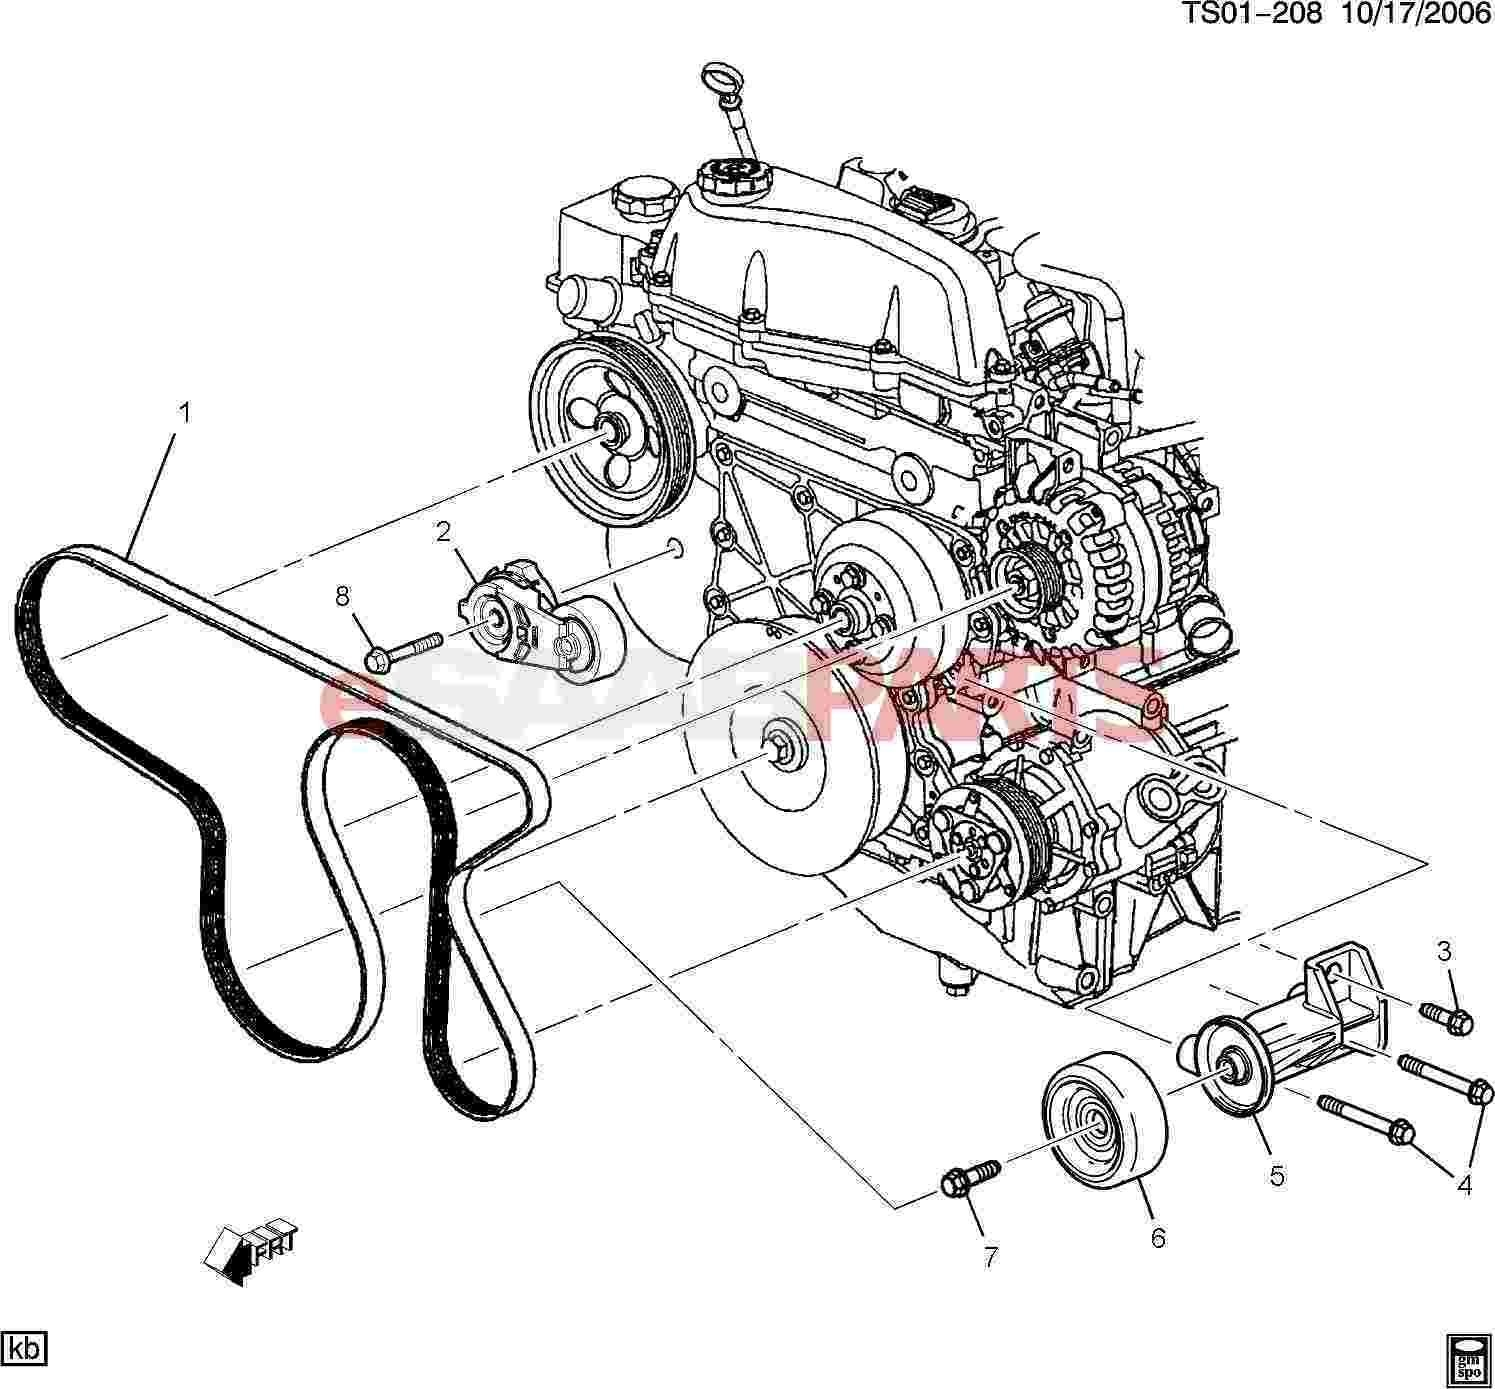 Yamaha Dt360 Wiring Diagram Trusted Diagrams 1974 Dt175 Schematic 1994 Toyota Truck Engine U2022 For Free Rt360 Specs